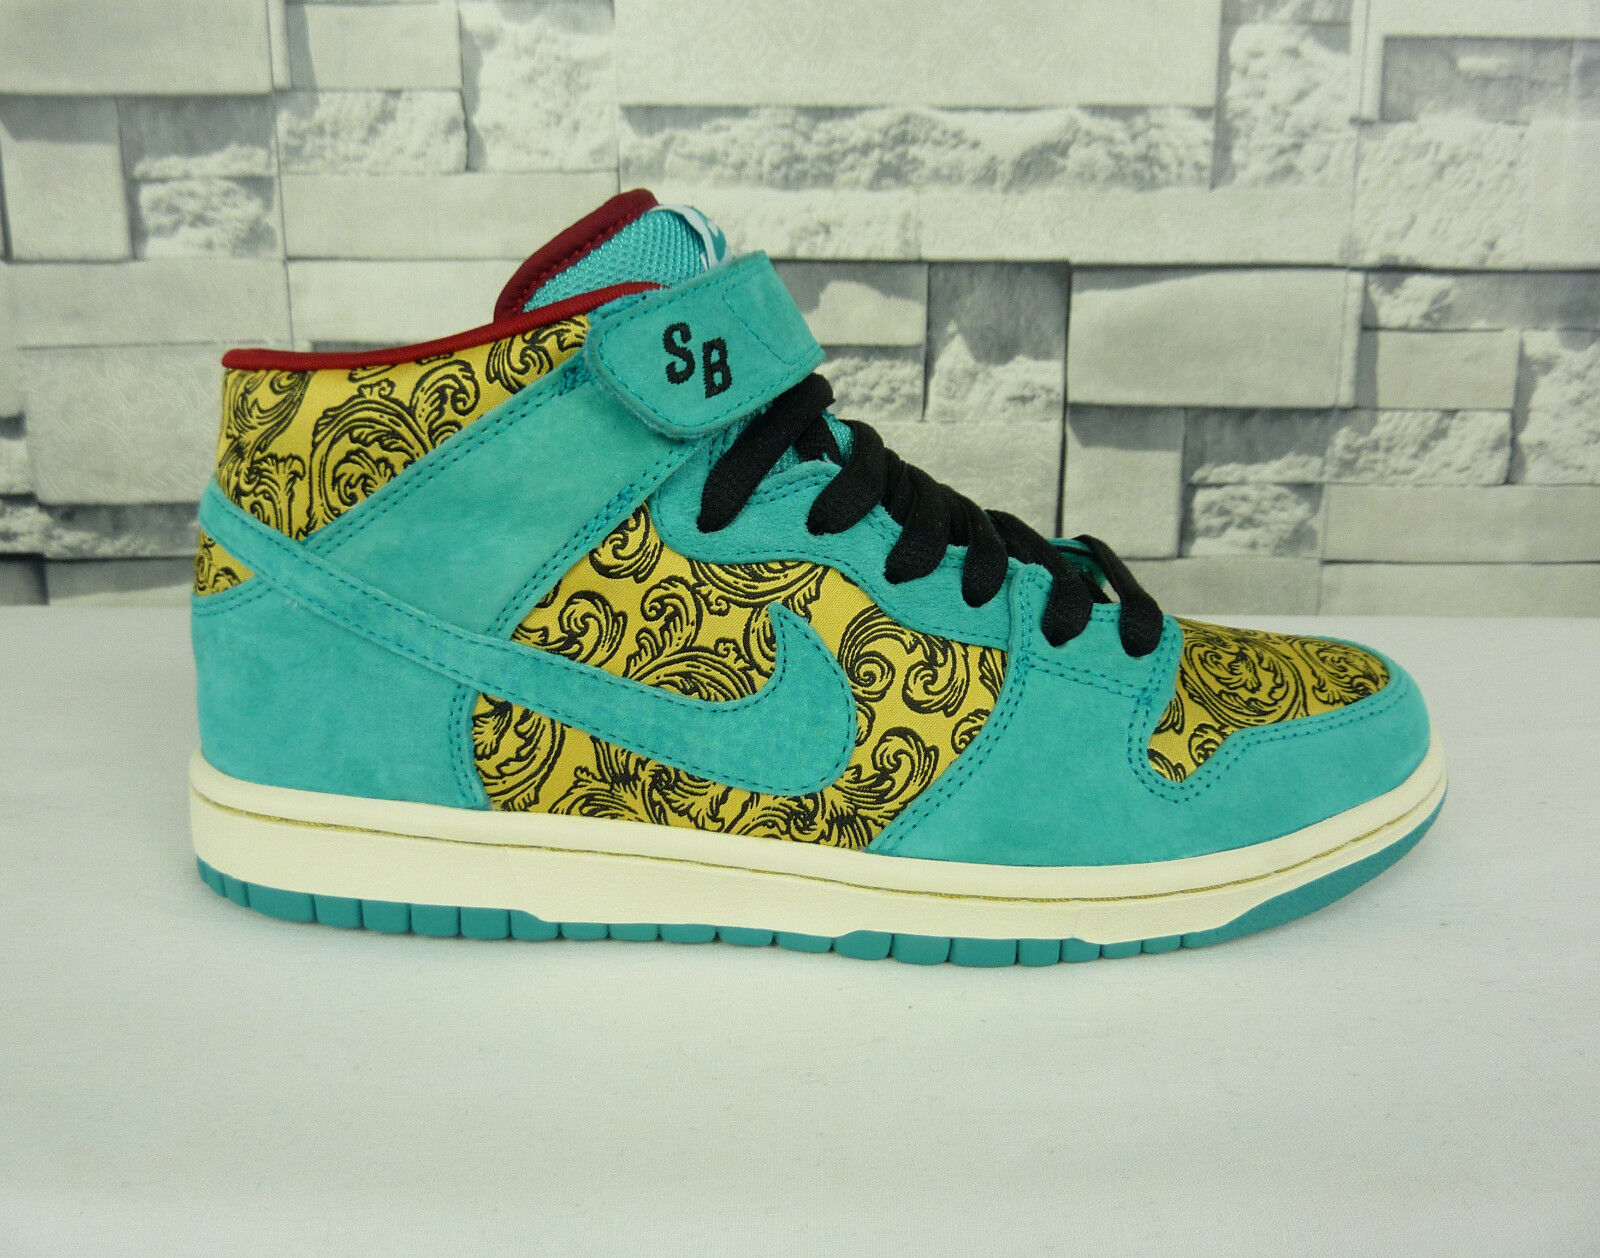 NEW NIKE DUNK MID PREMIUM SB PEACOCK SNEAKERS SIZE 8.5 US DEADSTOCK